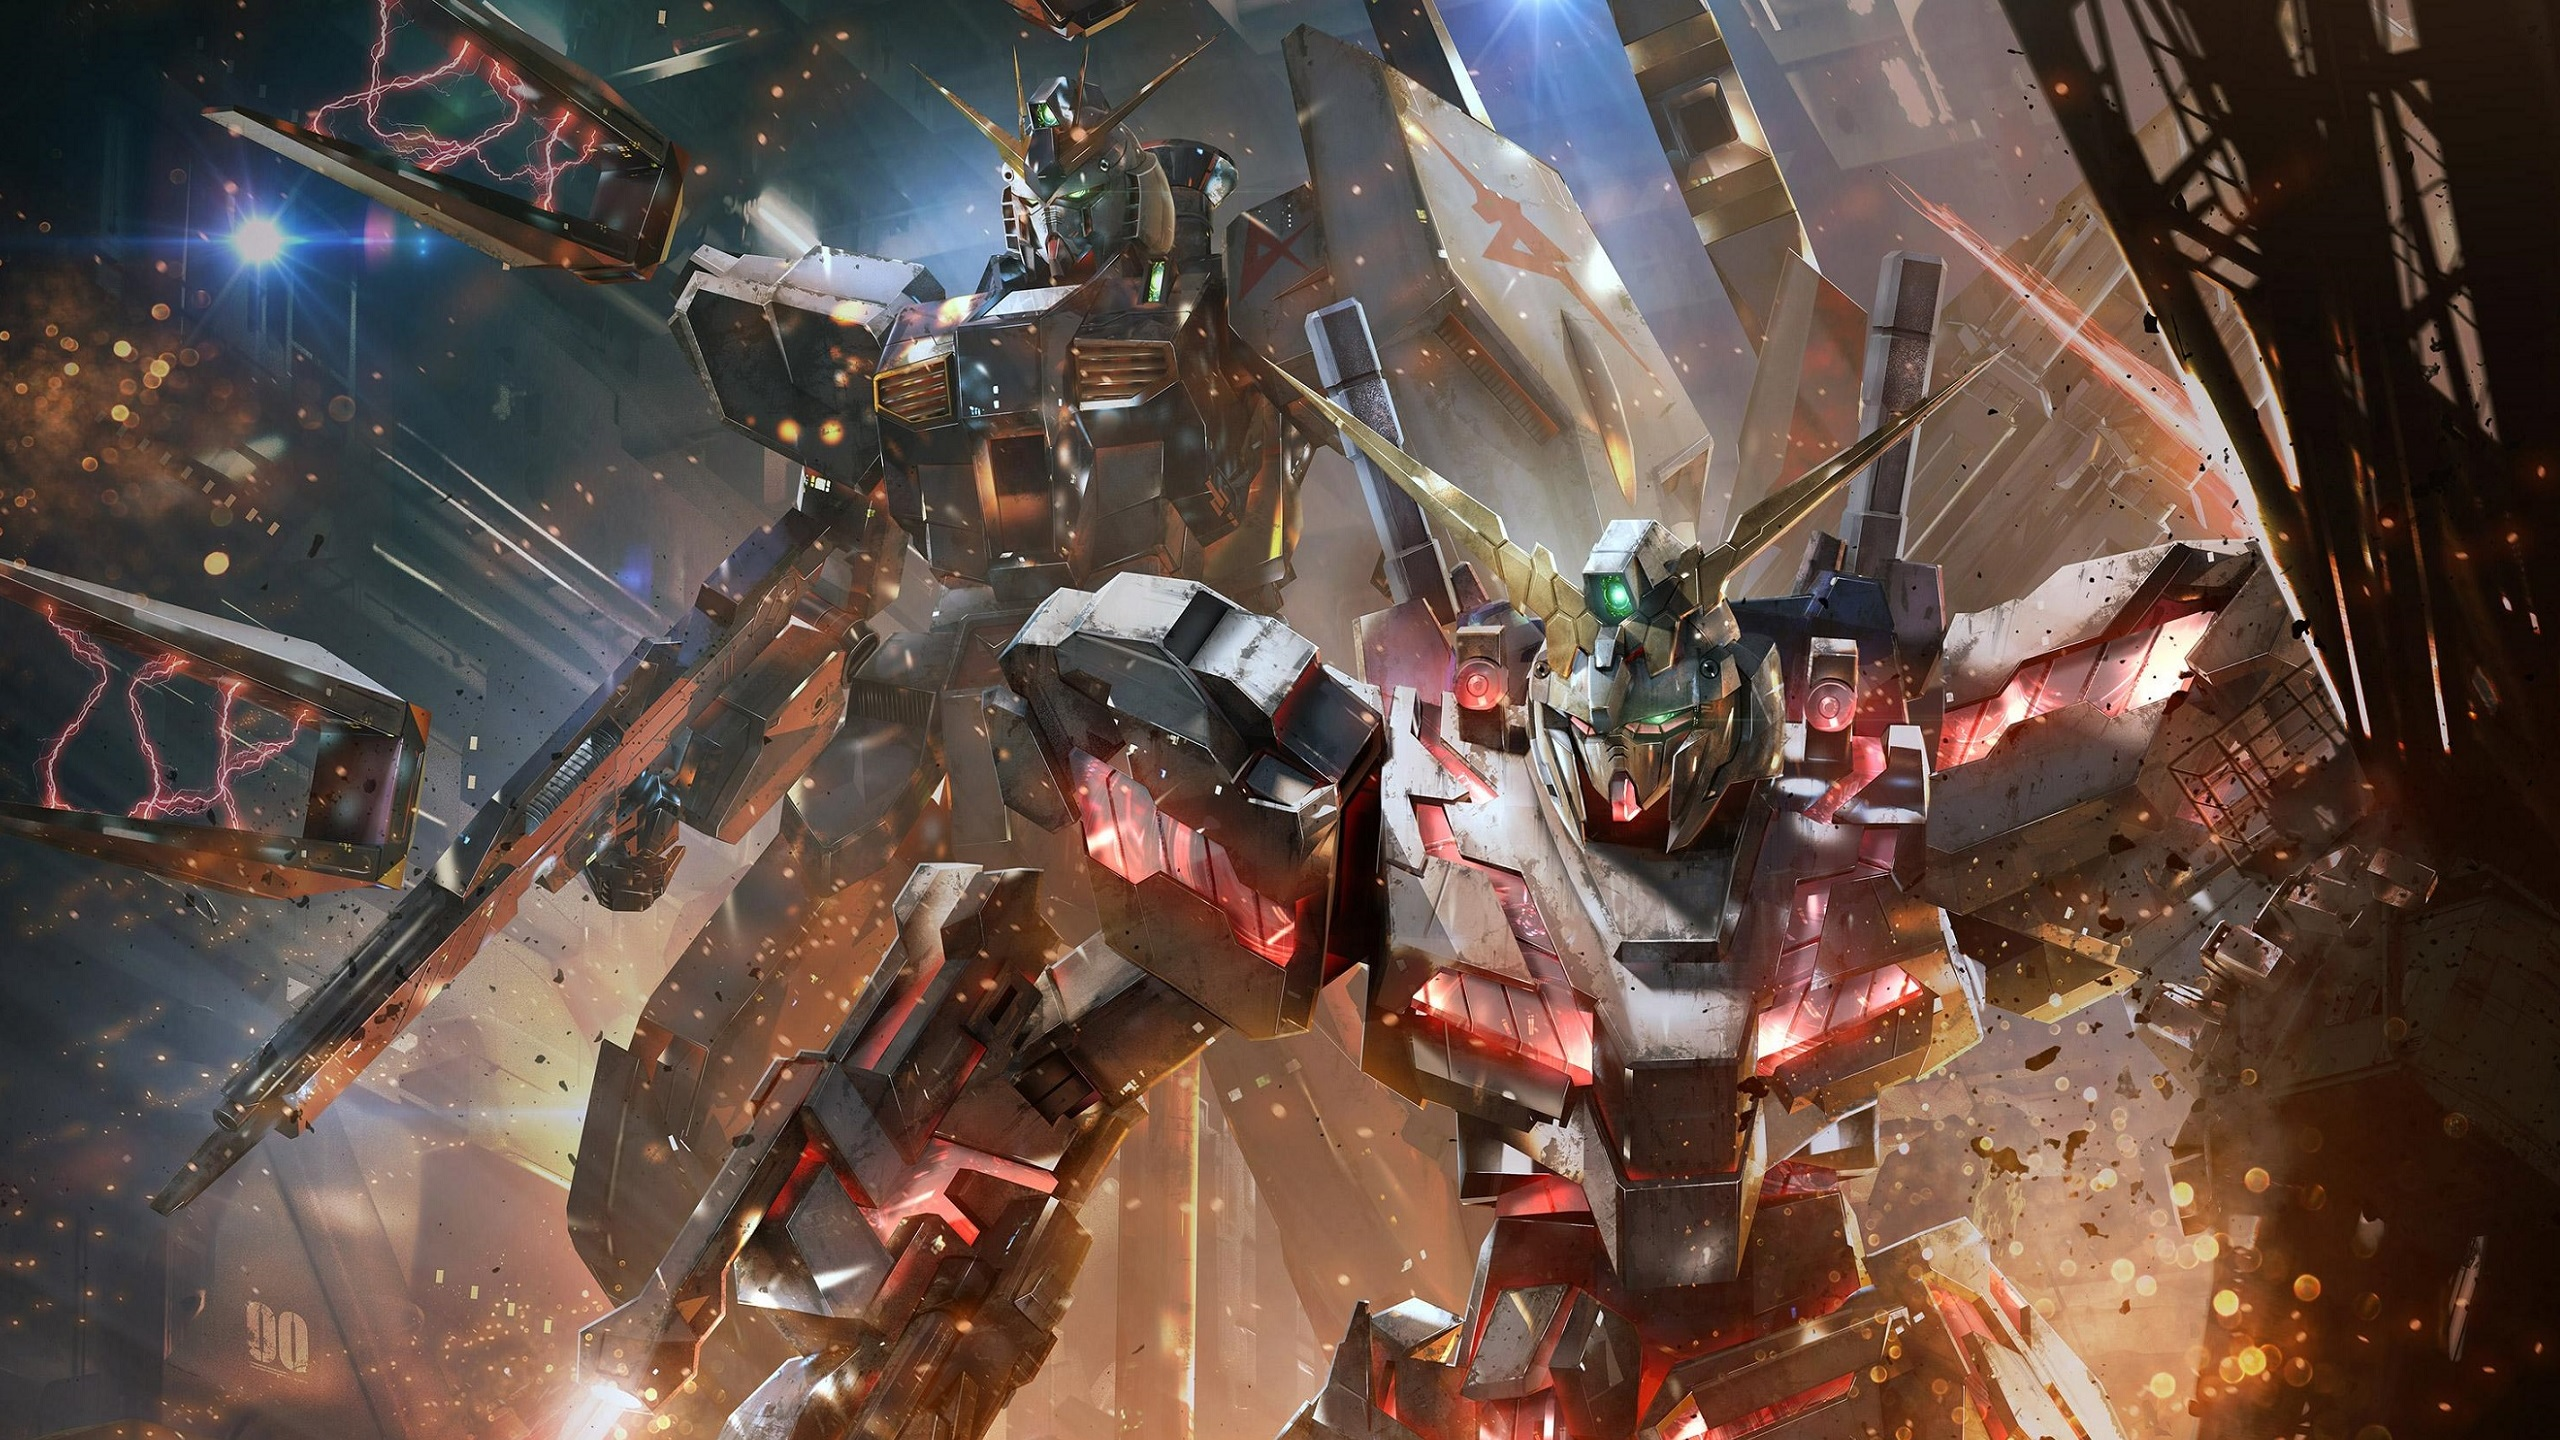 General 2560x1440 Mobile Suit Gundam Unicorn Gundam anime mech Mobile Suit robot artwork digital art Gundam Versus